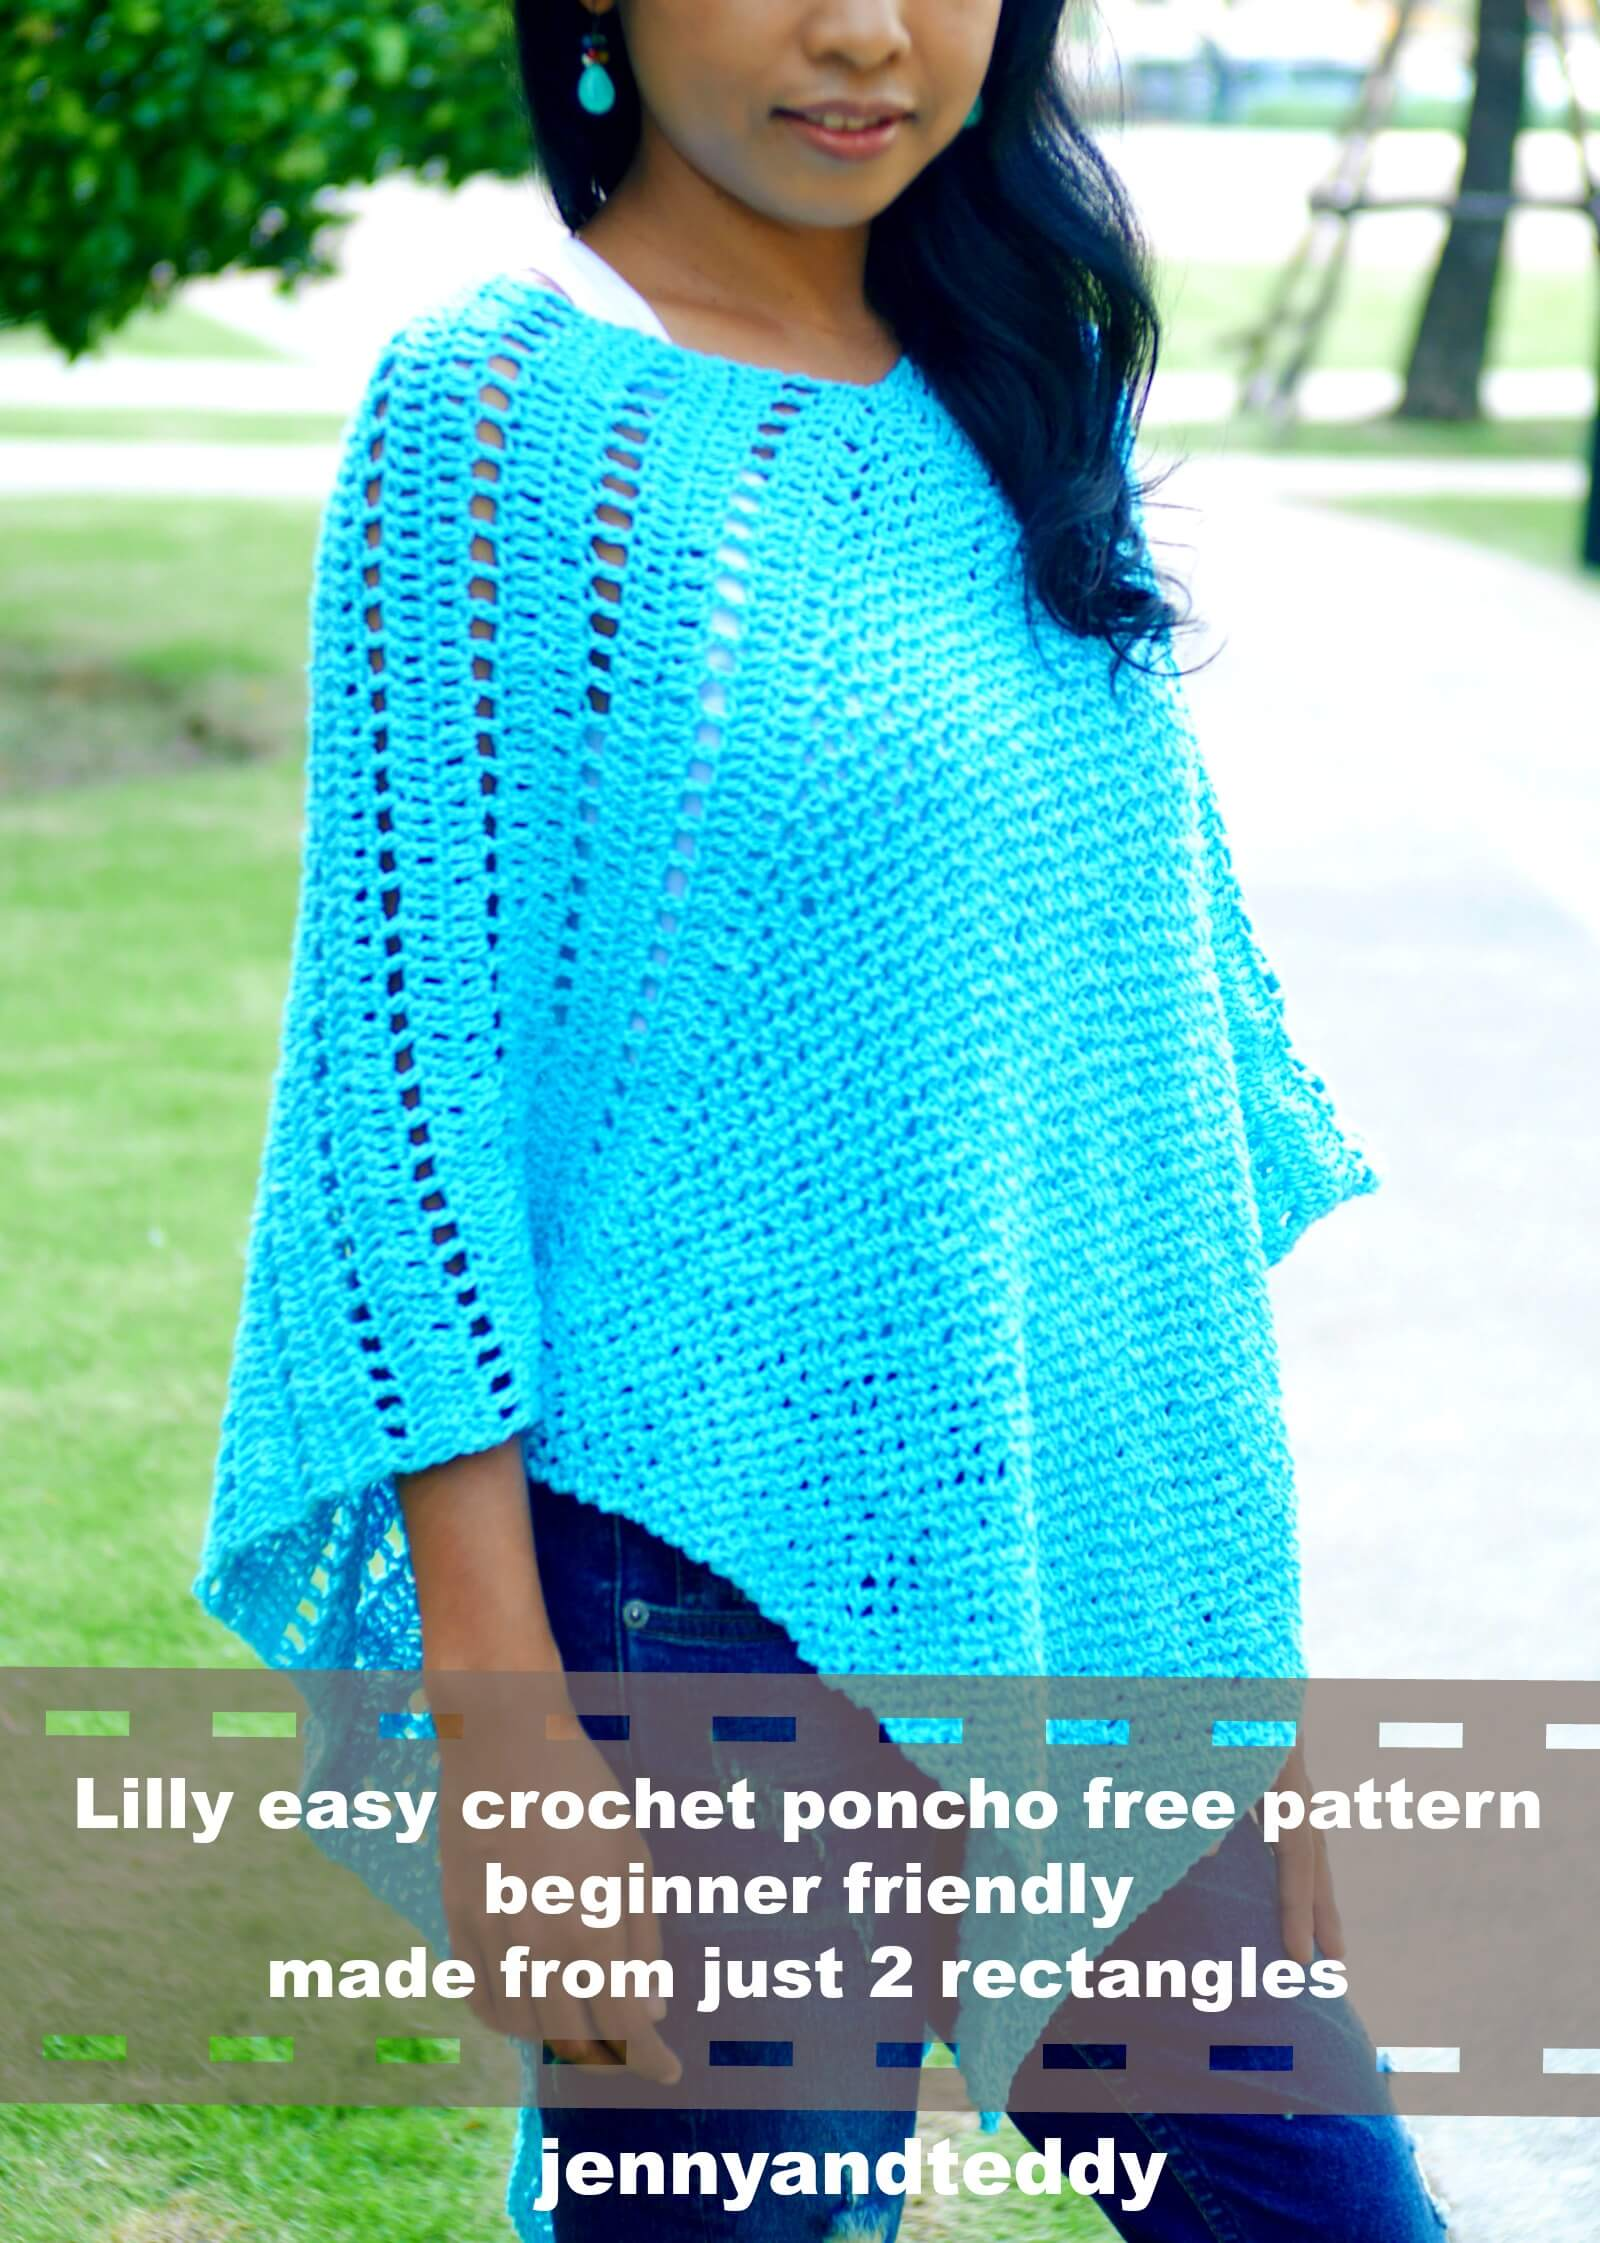 lilly easy crocht poncho photo free pattern